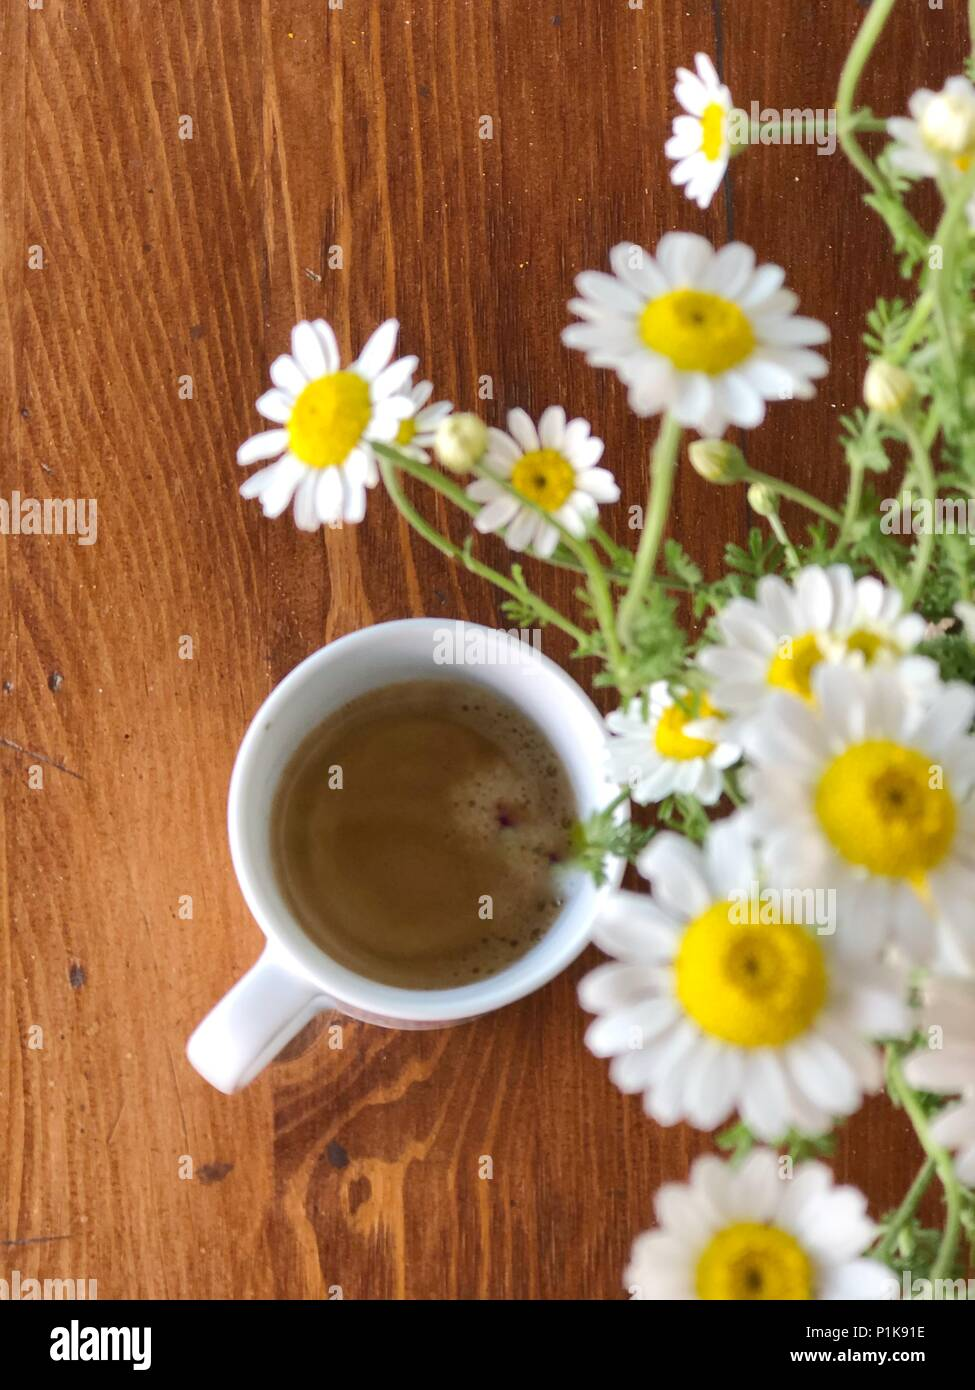 Cup of coffee and daisy flowers stock photo 207563258 alamy cup of coffee and daisy flowers izmirmasajfo